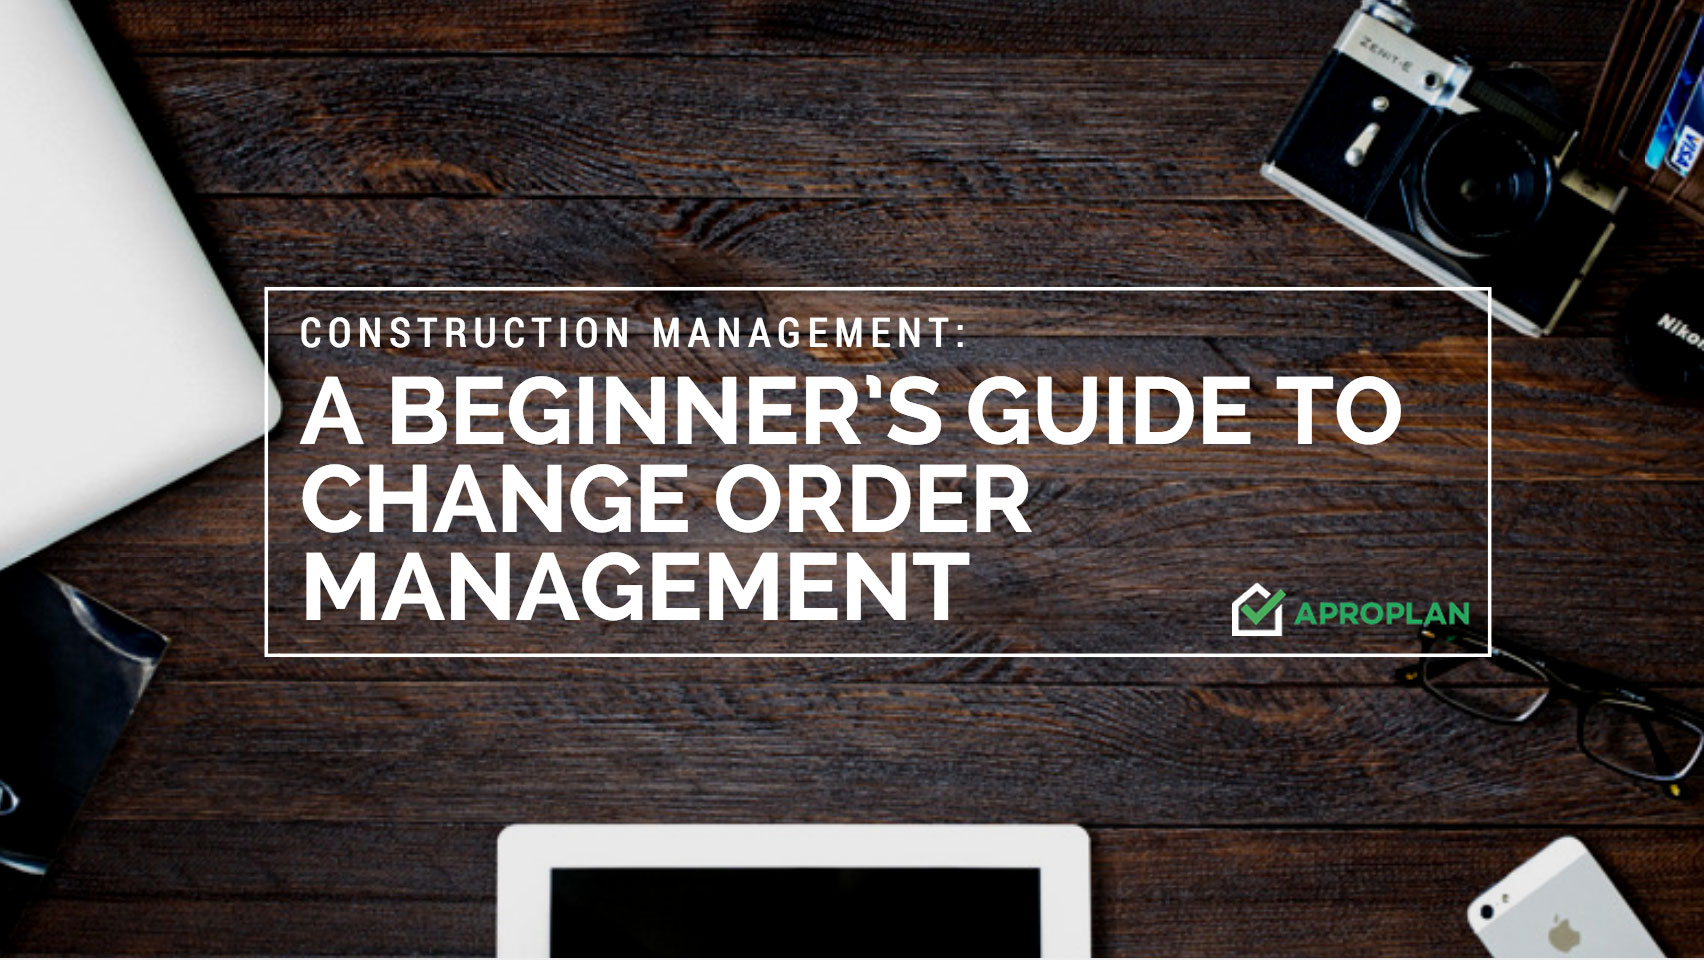 Construction Management: A beginner's guide to Change Order Management